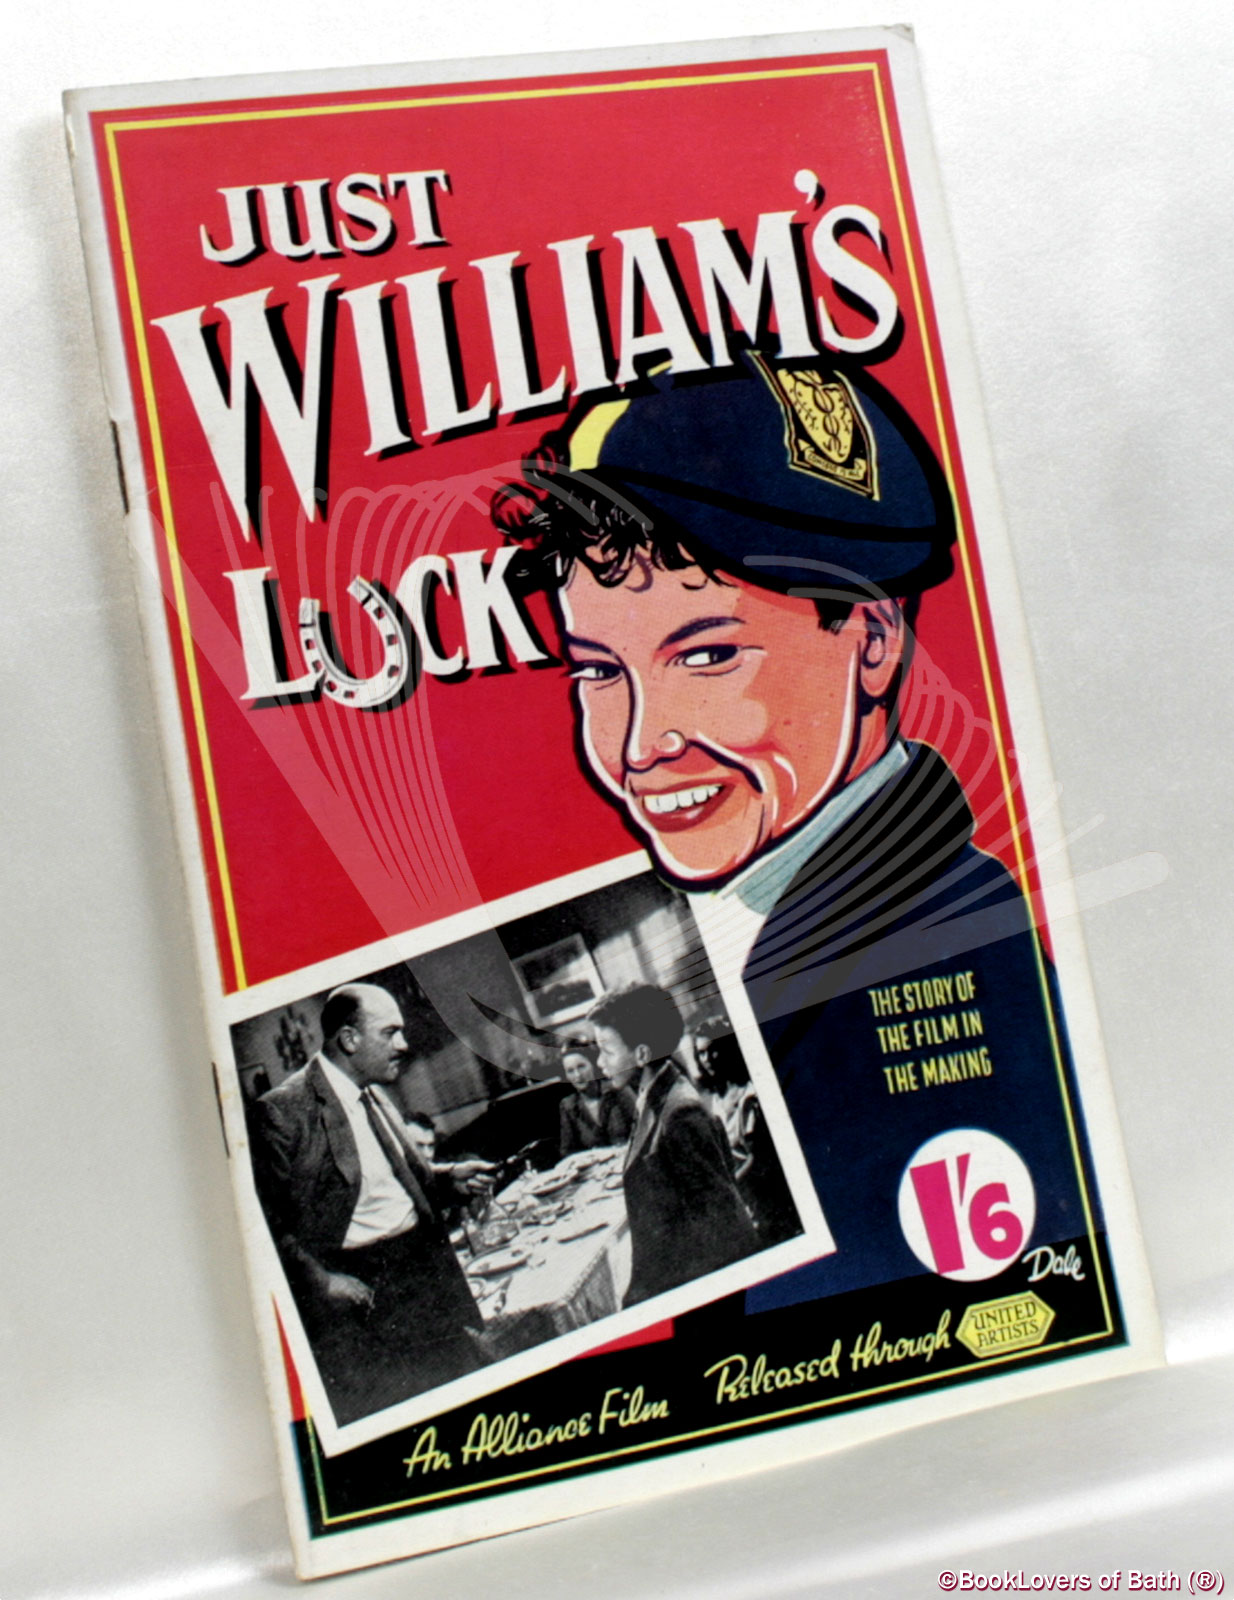 Just William's Luck: The Story of the Film in the Making - Anon.